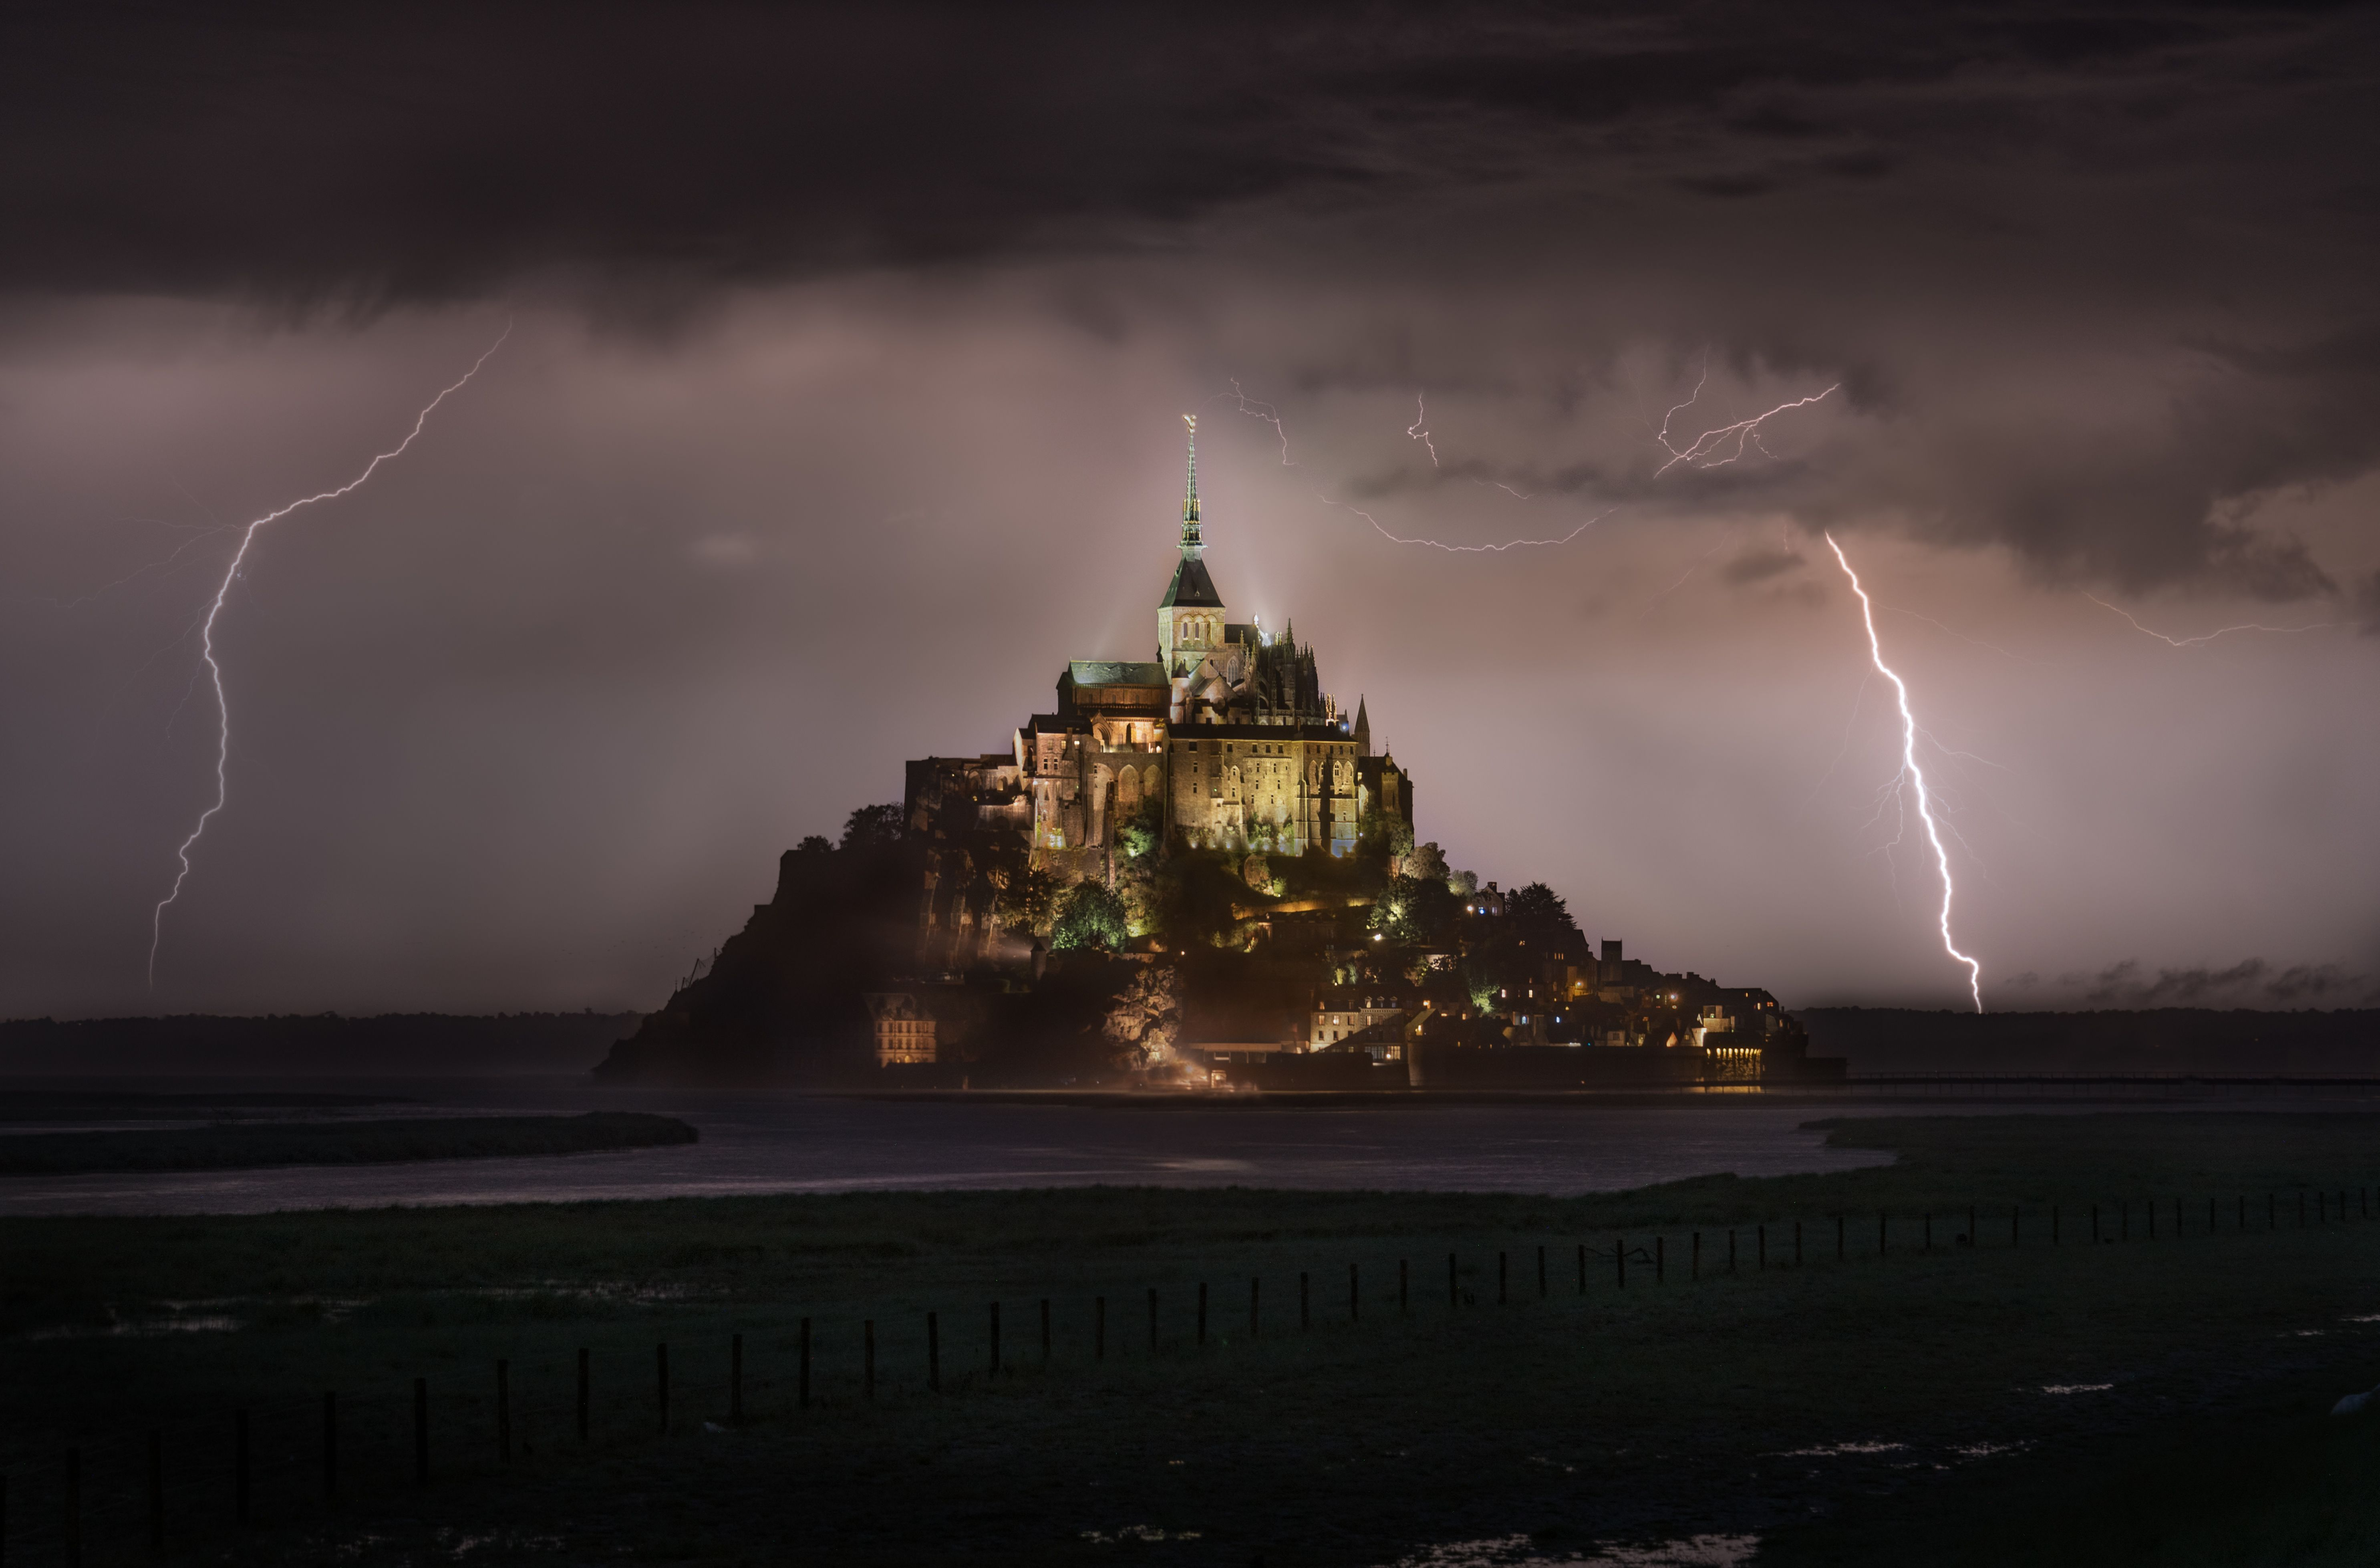 "Your Shot photographer Lukas Neuwirth was on his way to photograph Mont-Saint-Michel at sunset when he was caught in a downpour. After the rain stopped, he set up his tripod and captured this scene of lightning striking around the island. ""It was amazing to witness this spectacular sight and mood!"" he remembers."